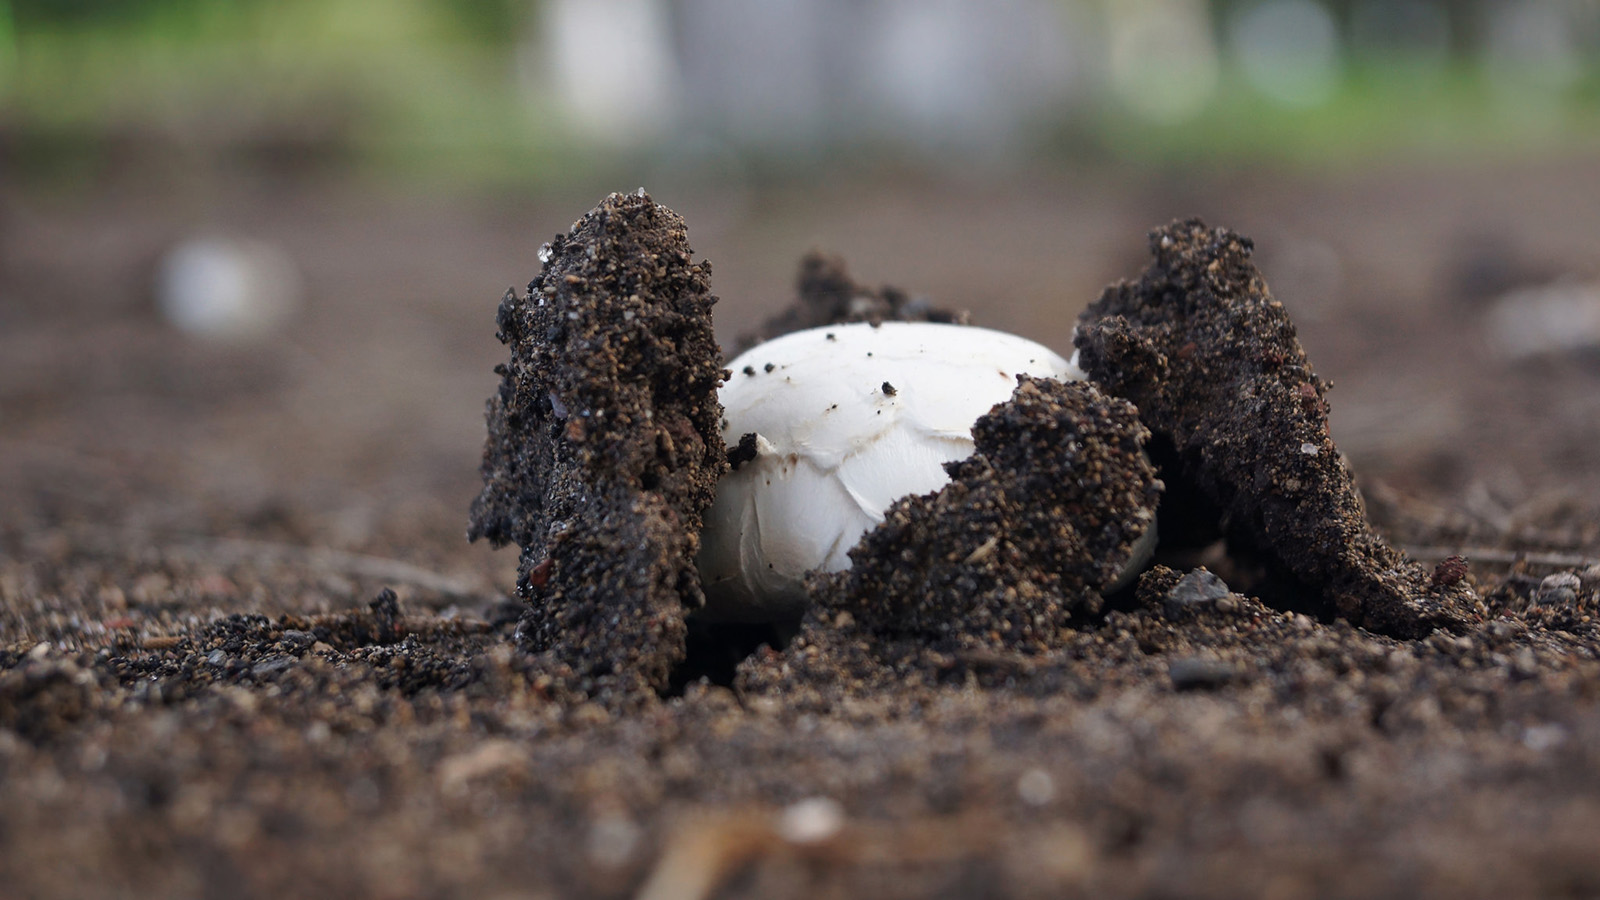 The emerging fruiting body of Agaricus bisporus